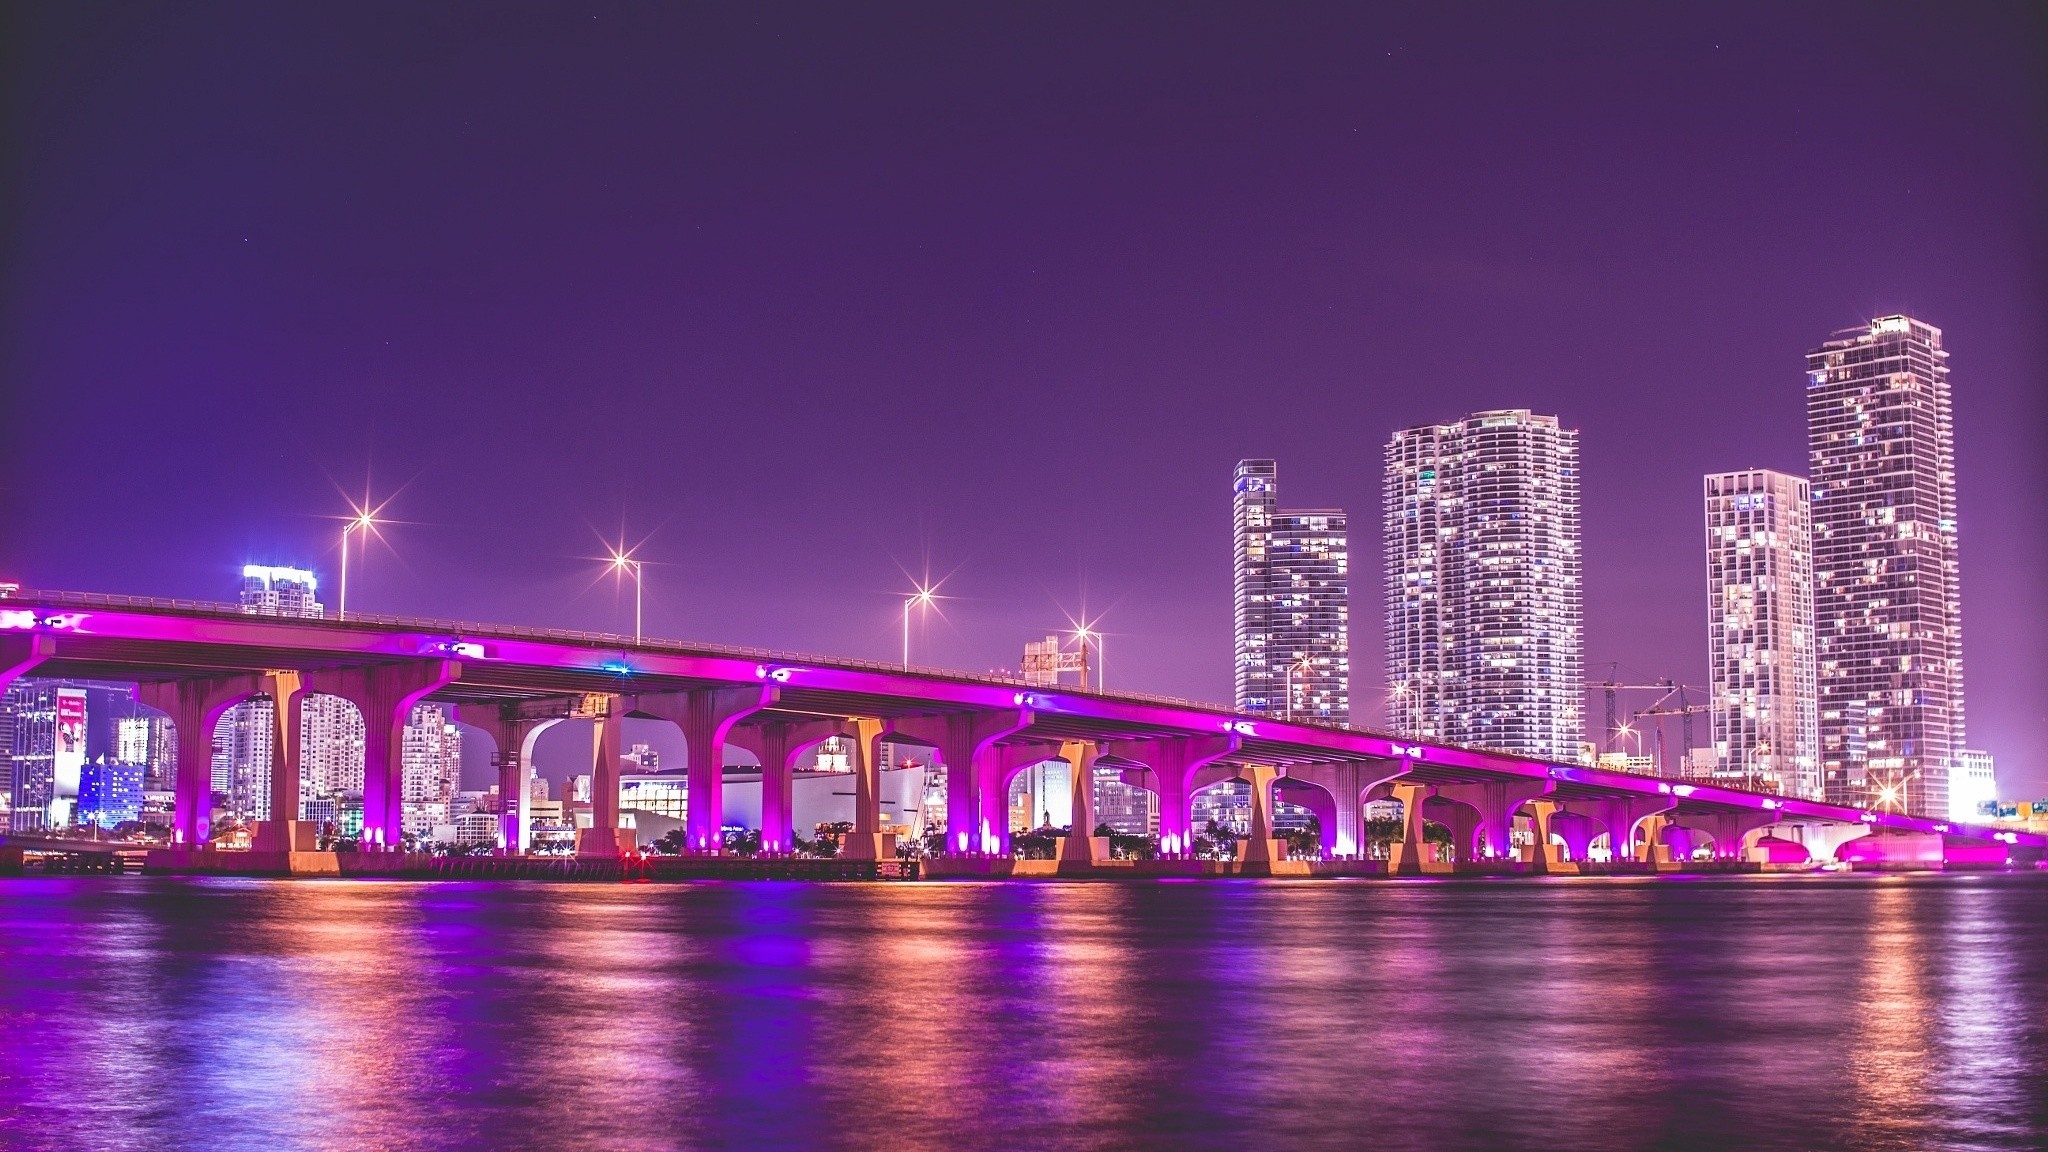 2048x1152 Florida Night Vice City Bridge